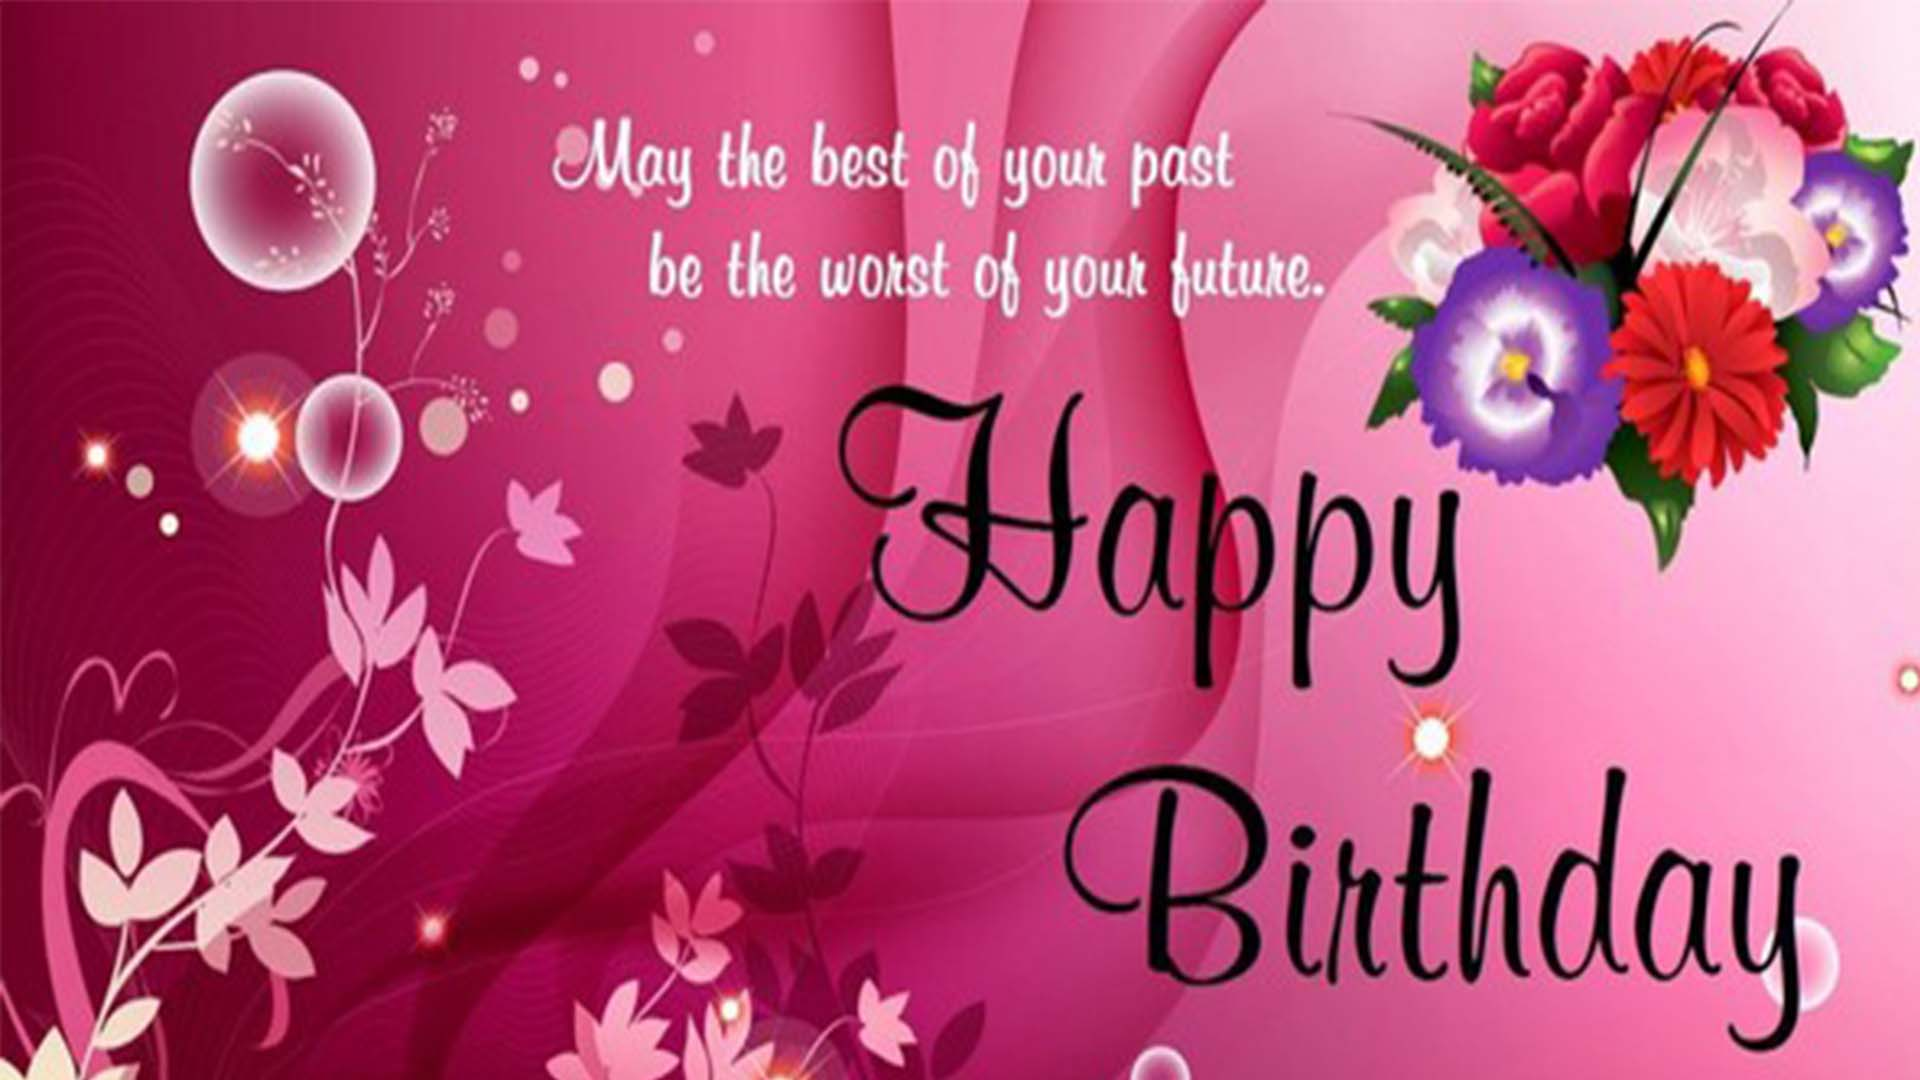 Happy Birthday Images with Beautiful Wishes, Greetings & Messages